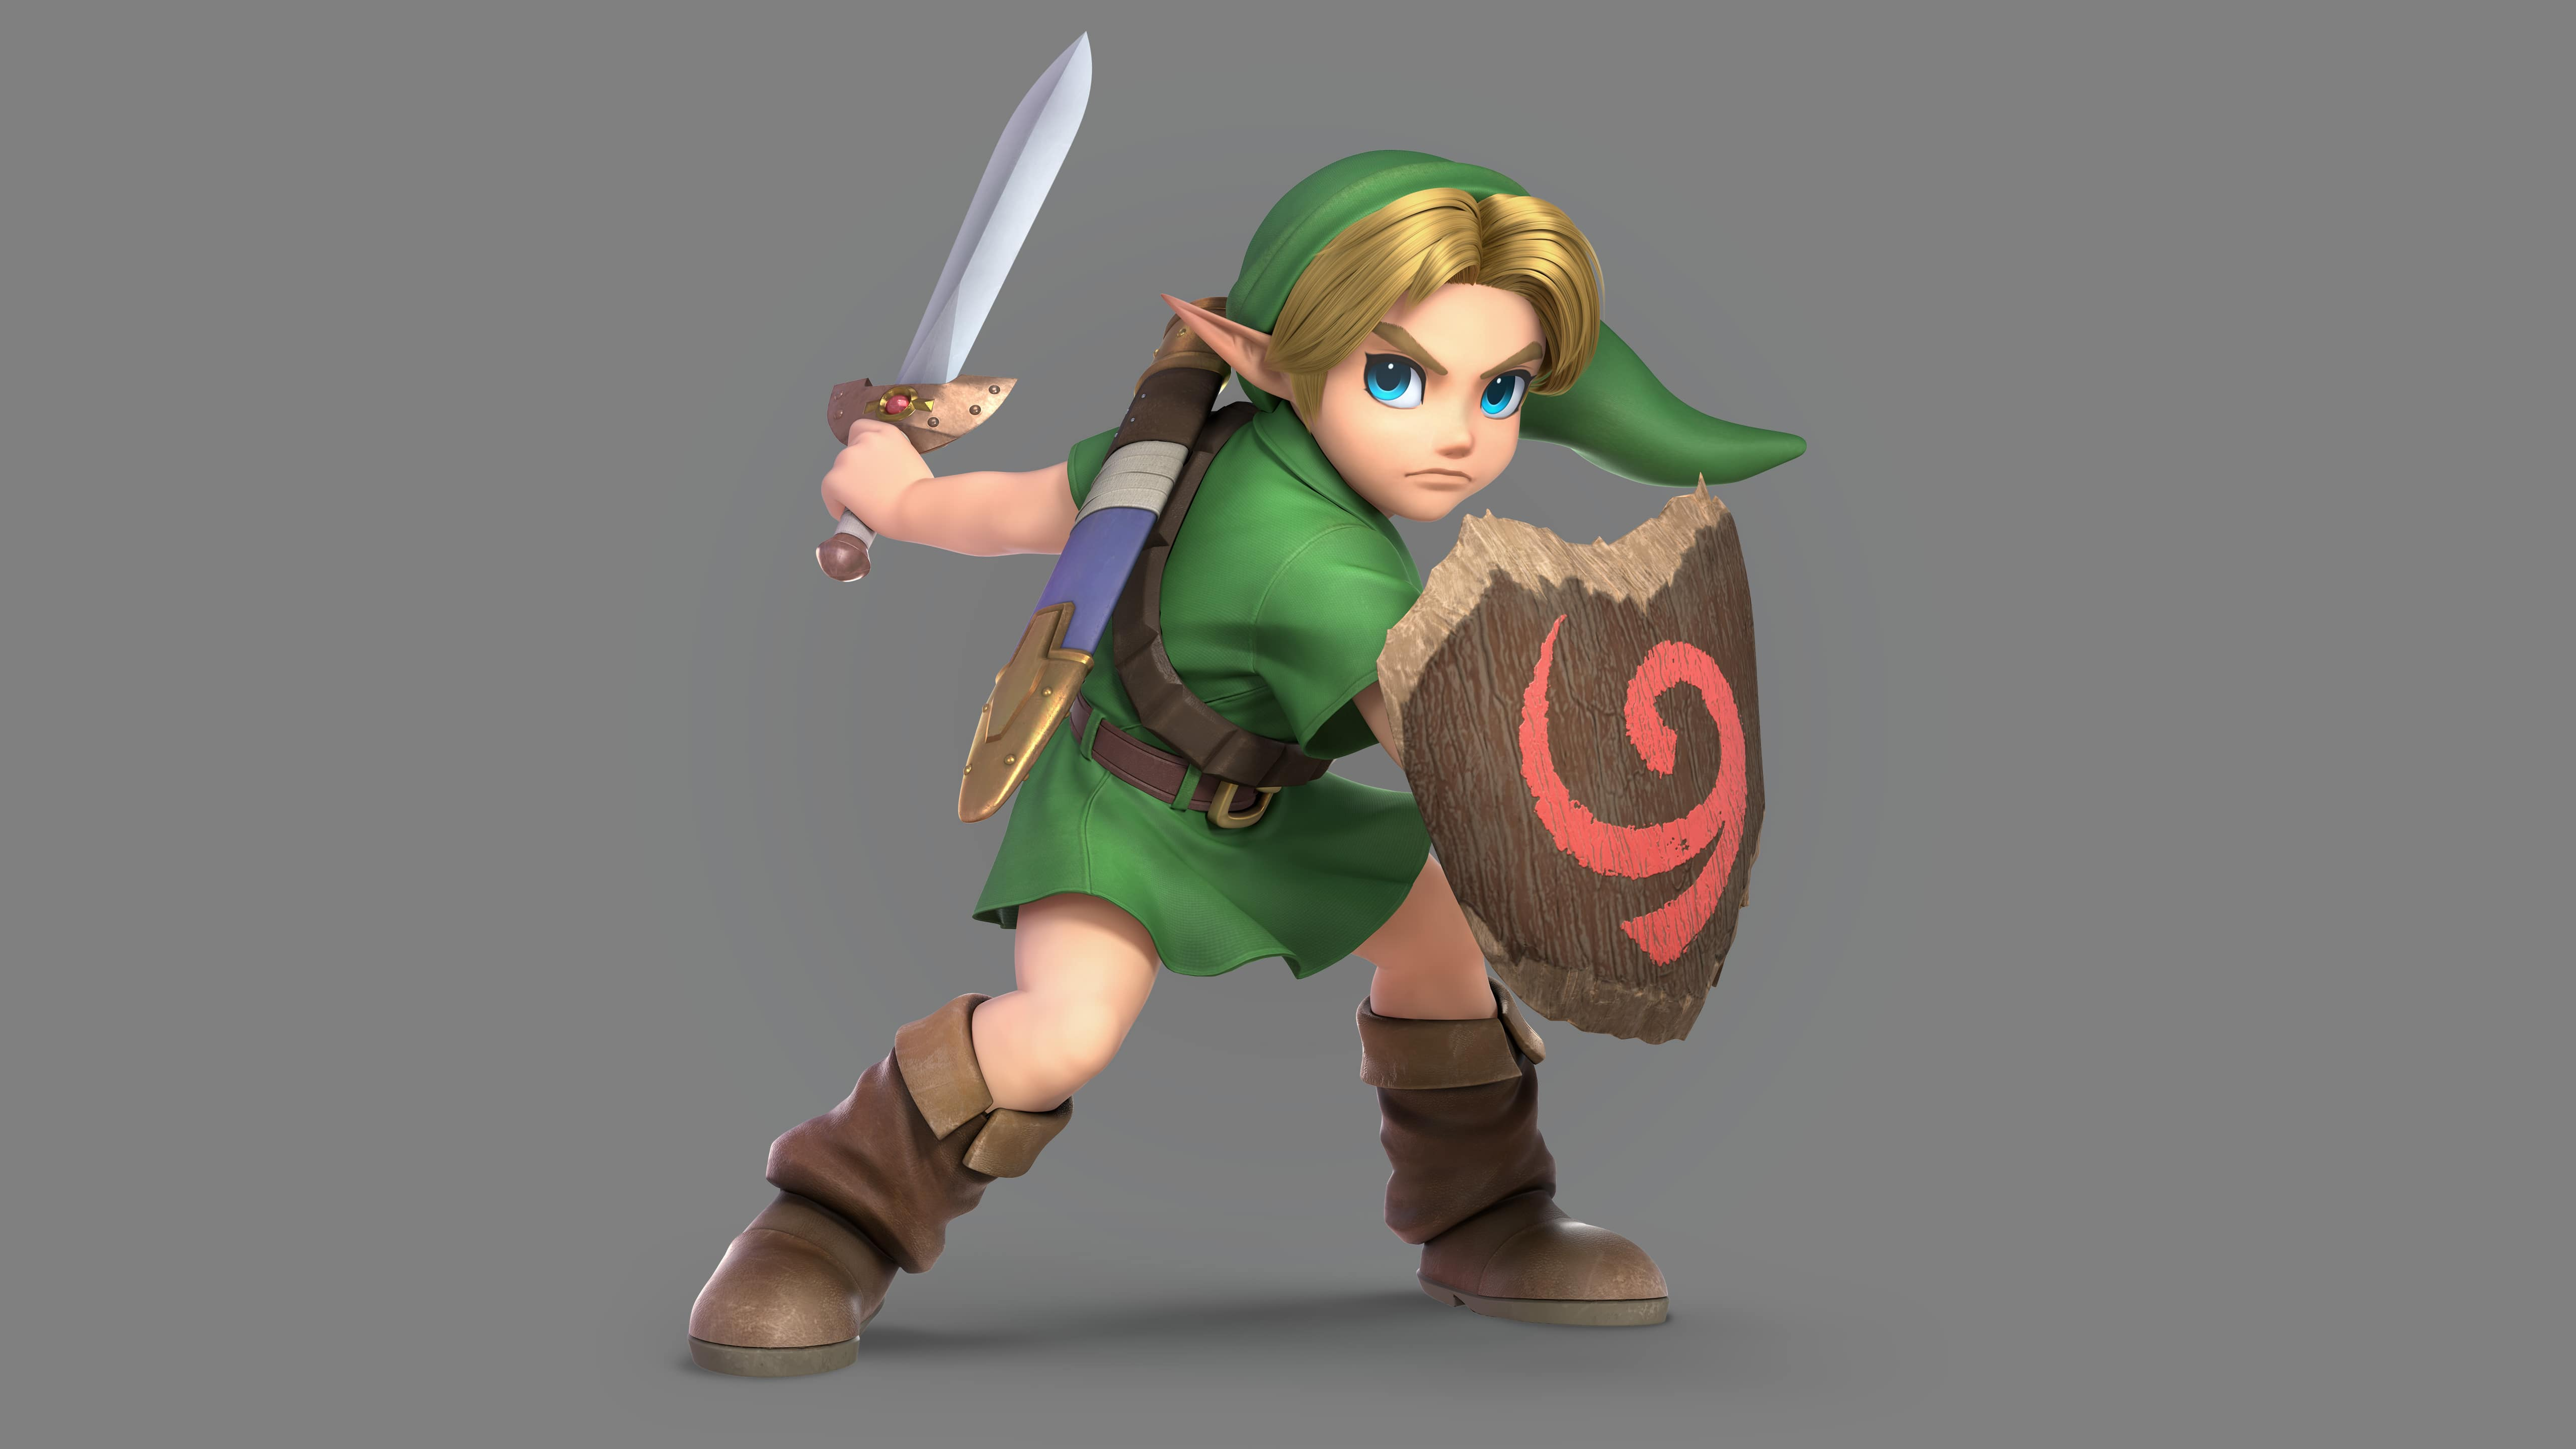 Young Link Super Smash Bros Ultimate 5k 4217 Wallpapers and 5120x2880